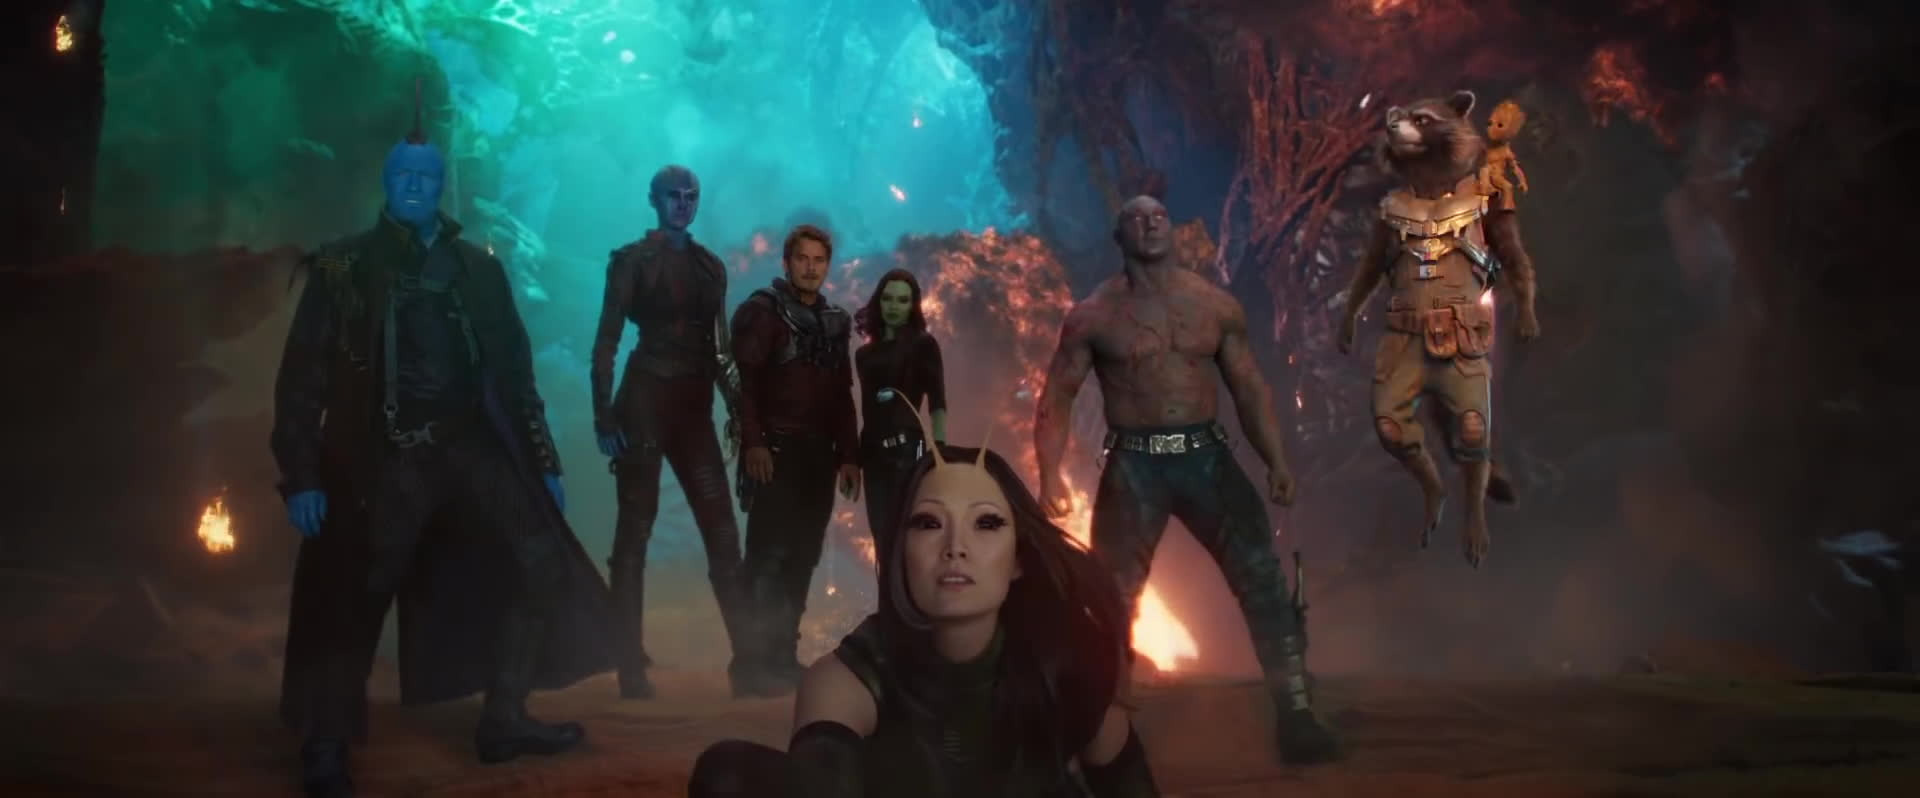 comic books, comics, guardians of the galaxy, marvel, marvel cinematic universe, mcu, Guardians of the Galaxy Vol. 2 Extended Big Game Spot GIFs